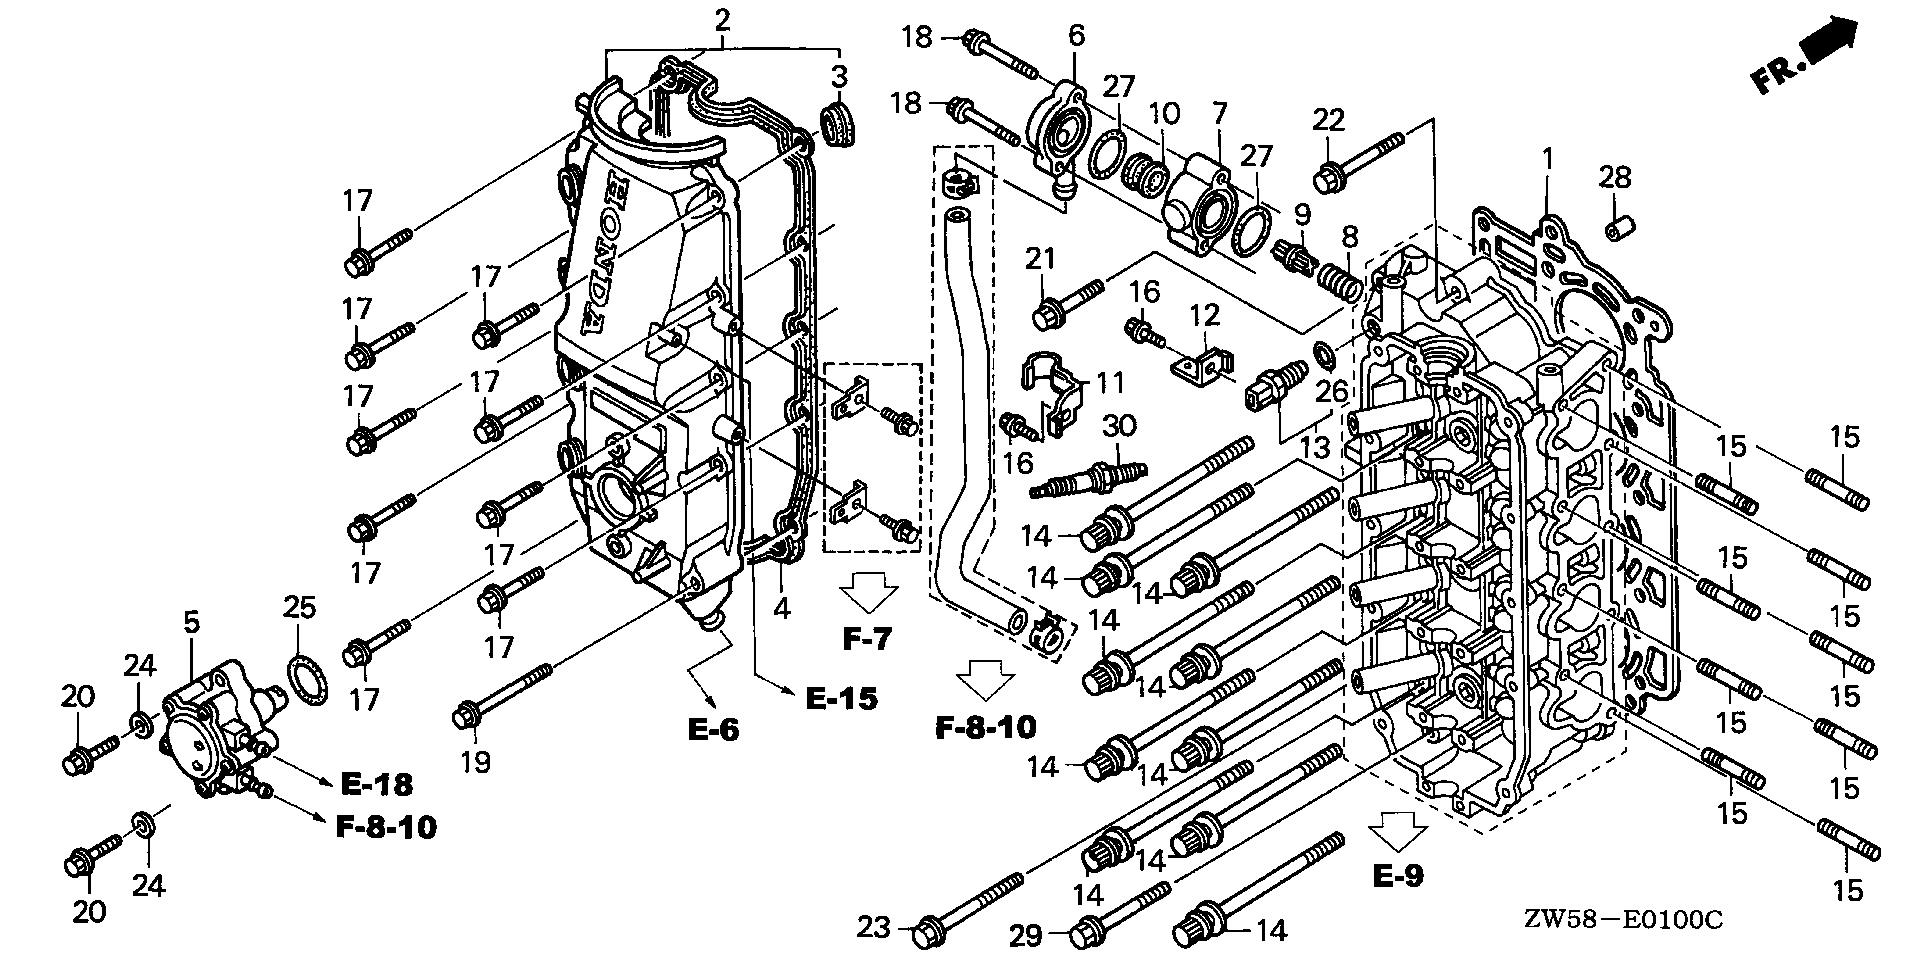 Honda Marine Parts Look Up Official Site Cylinder Diagram Head Cover